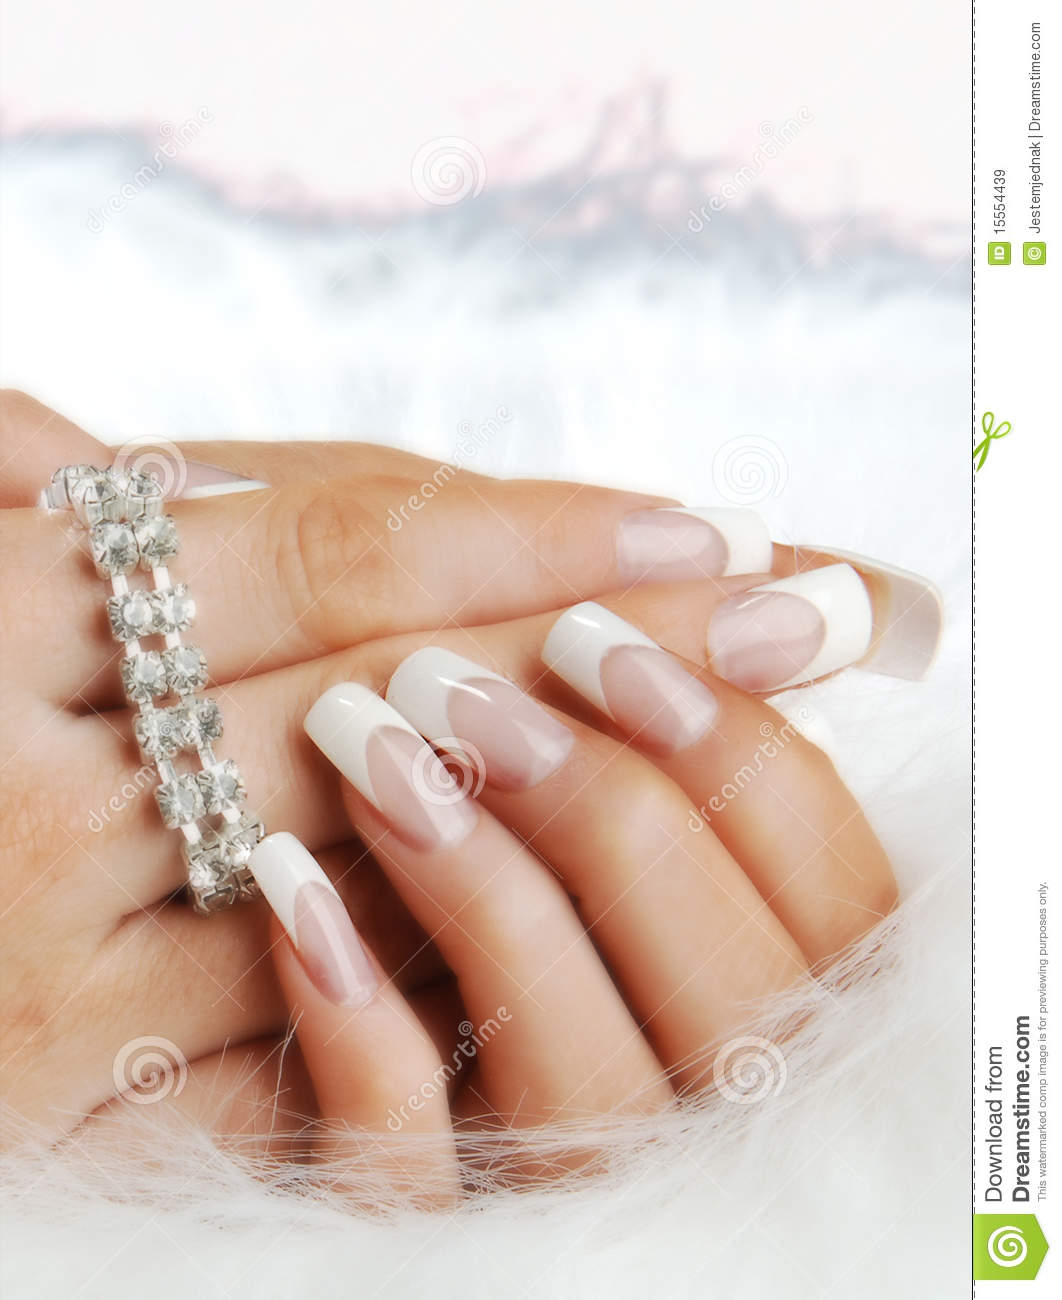 Fake Nails On Hands Of Woman Stock Image - Image of fingernails ...